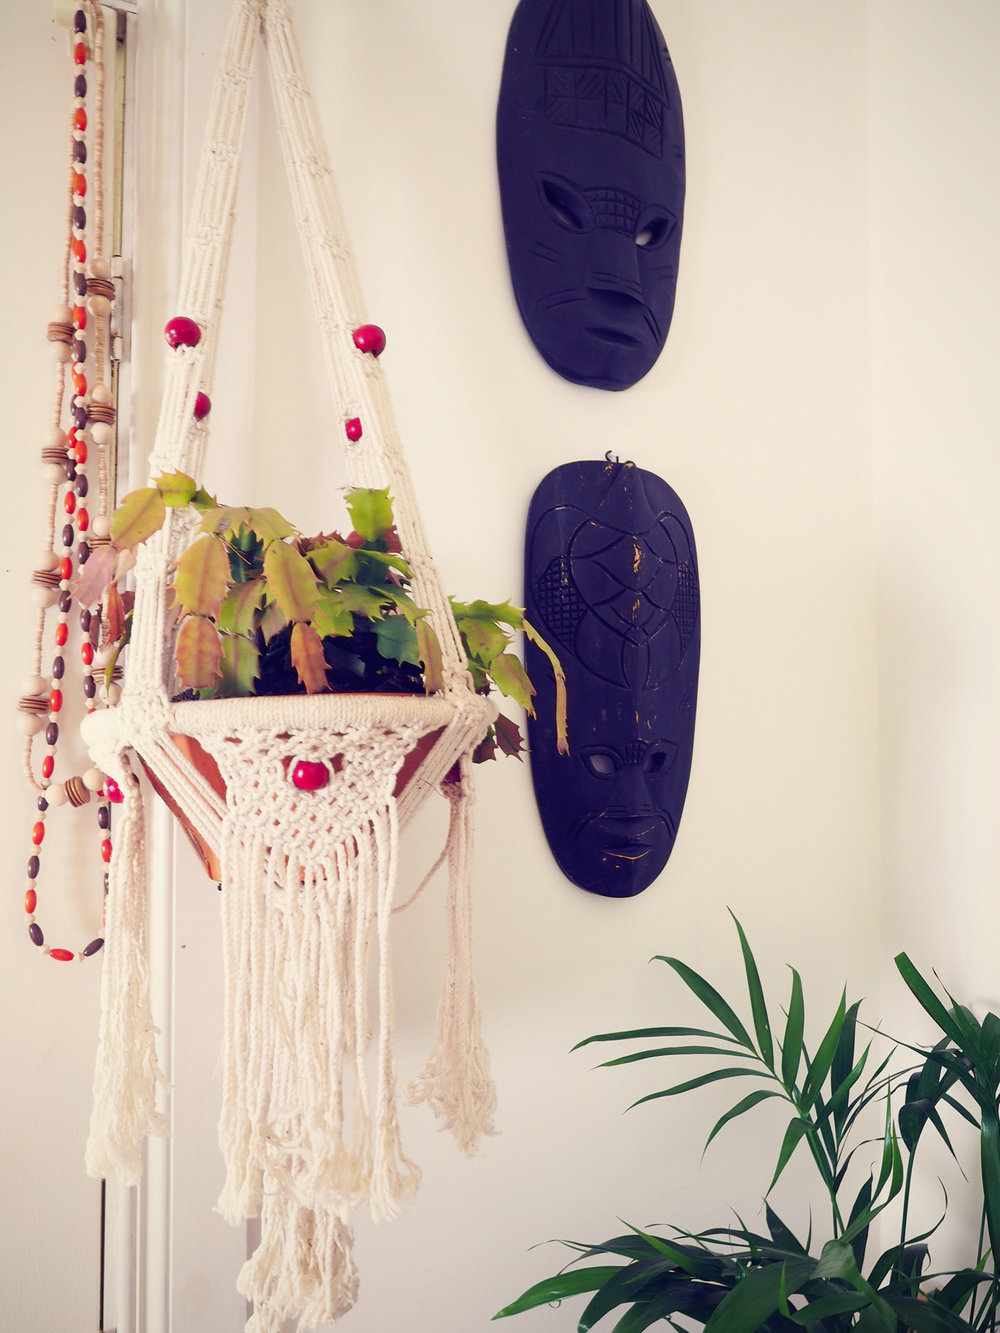 eclectic home decor - macrame hanging planter, tiki masks